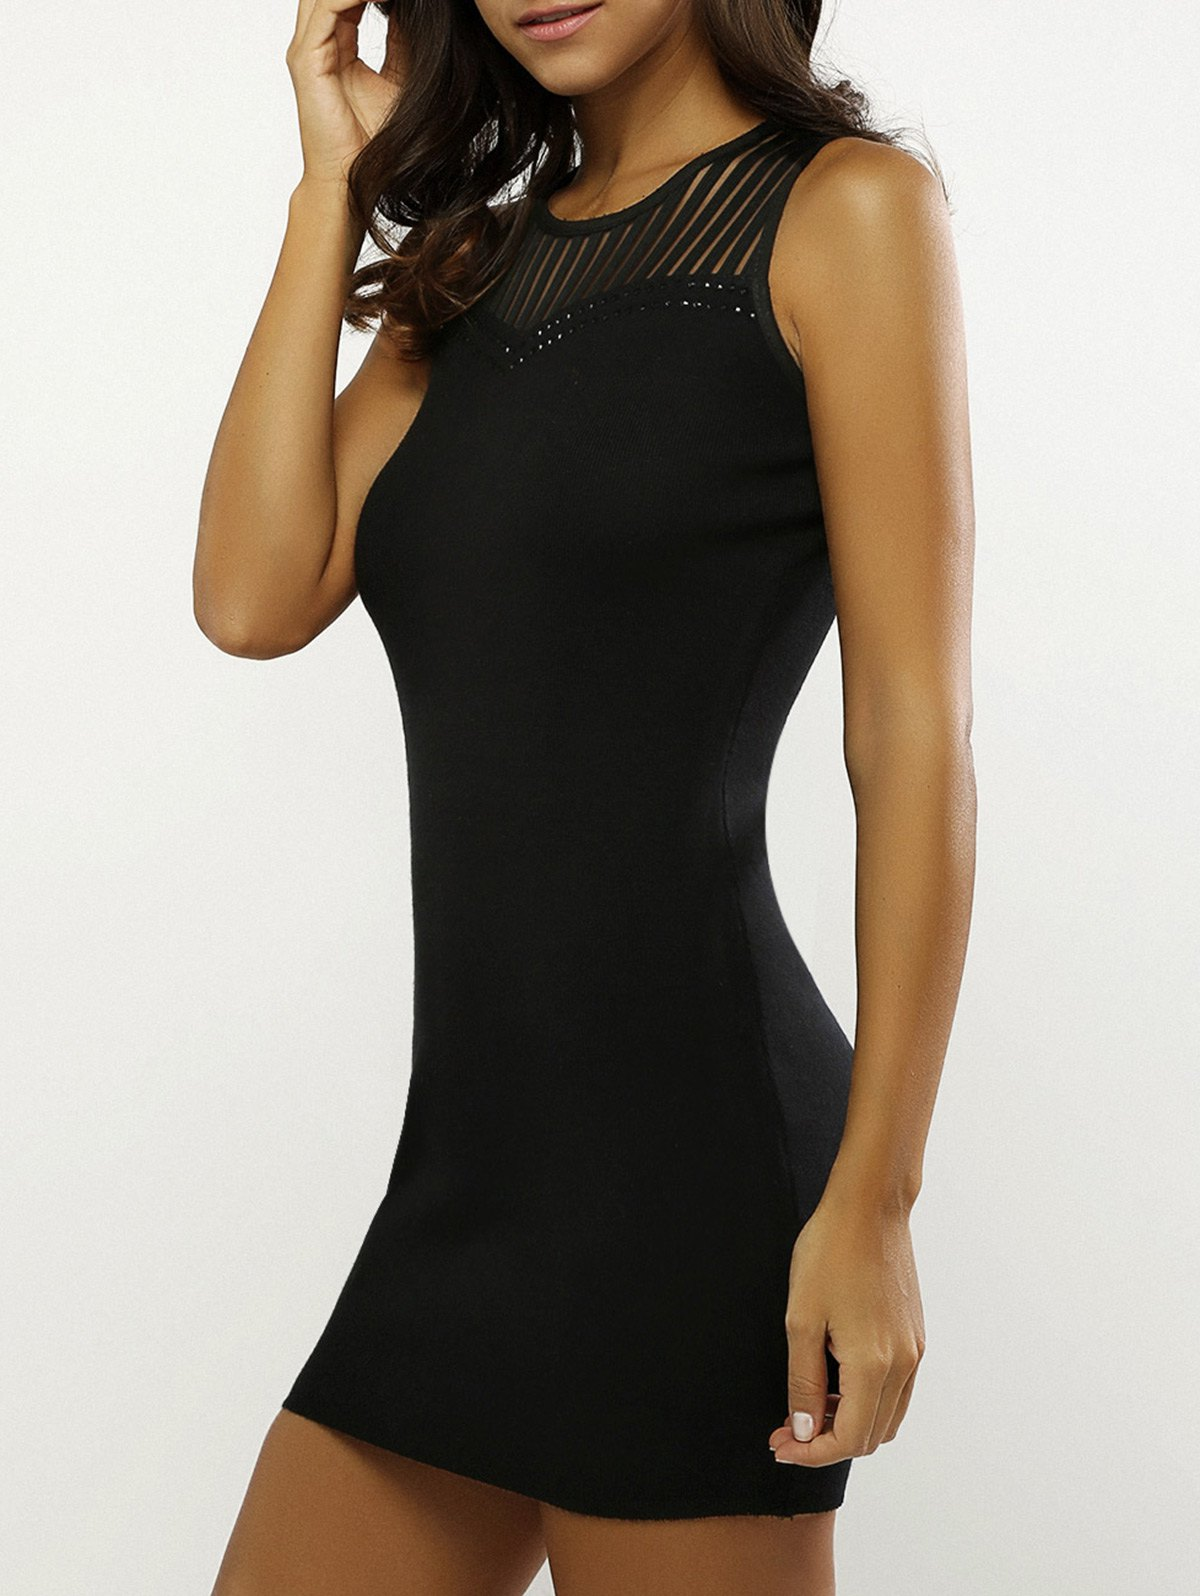 Beading Openwork Bodycon Dress - BLACK ONE SIZE